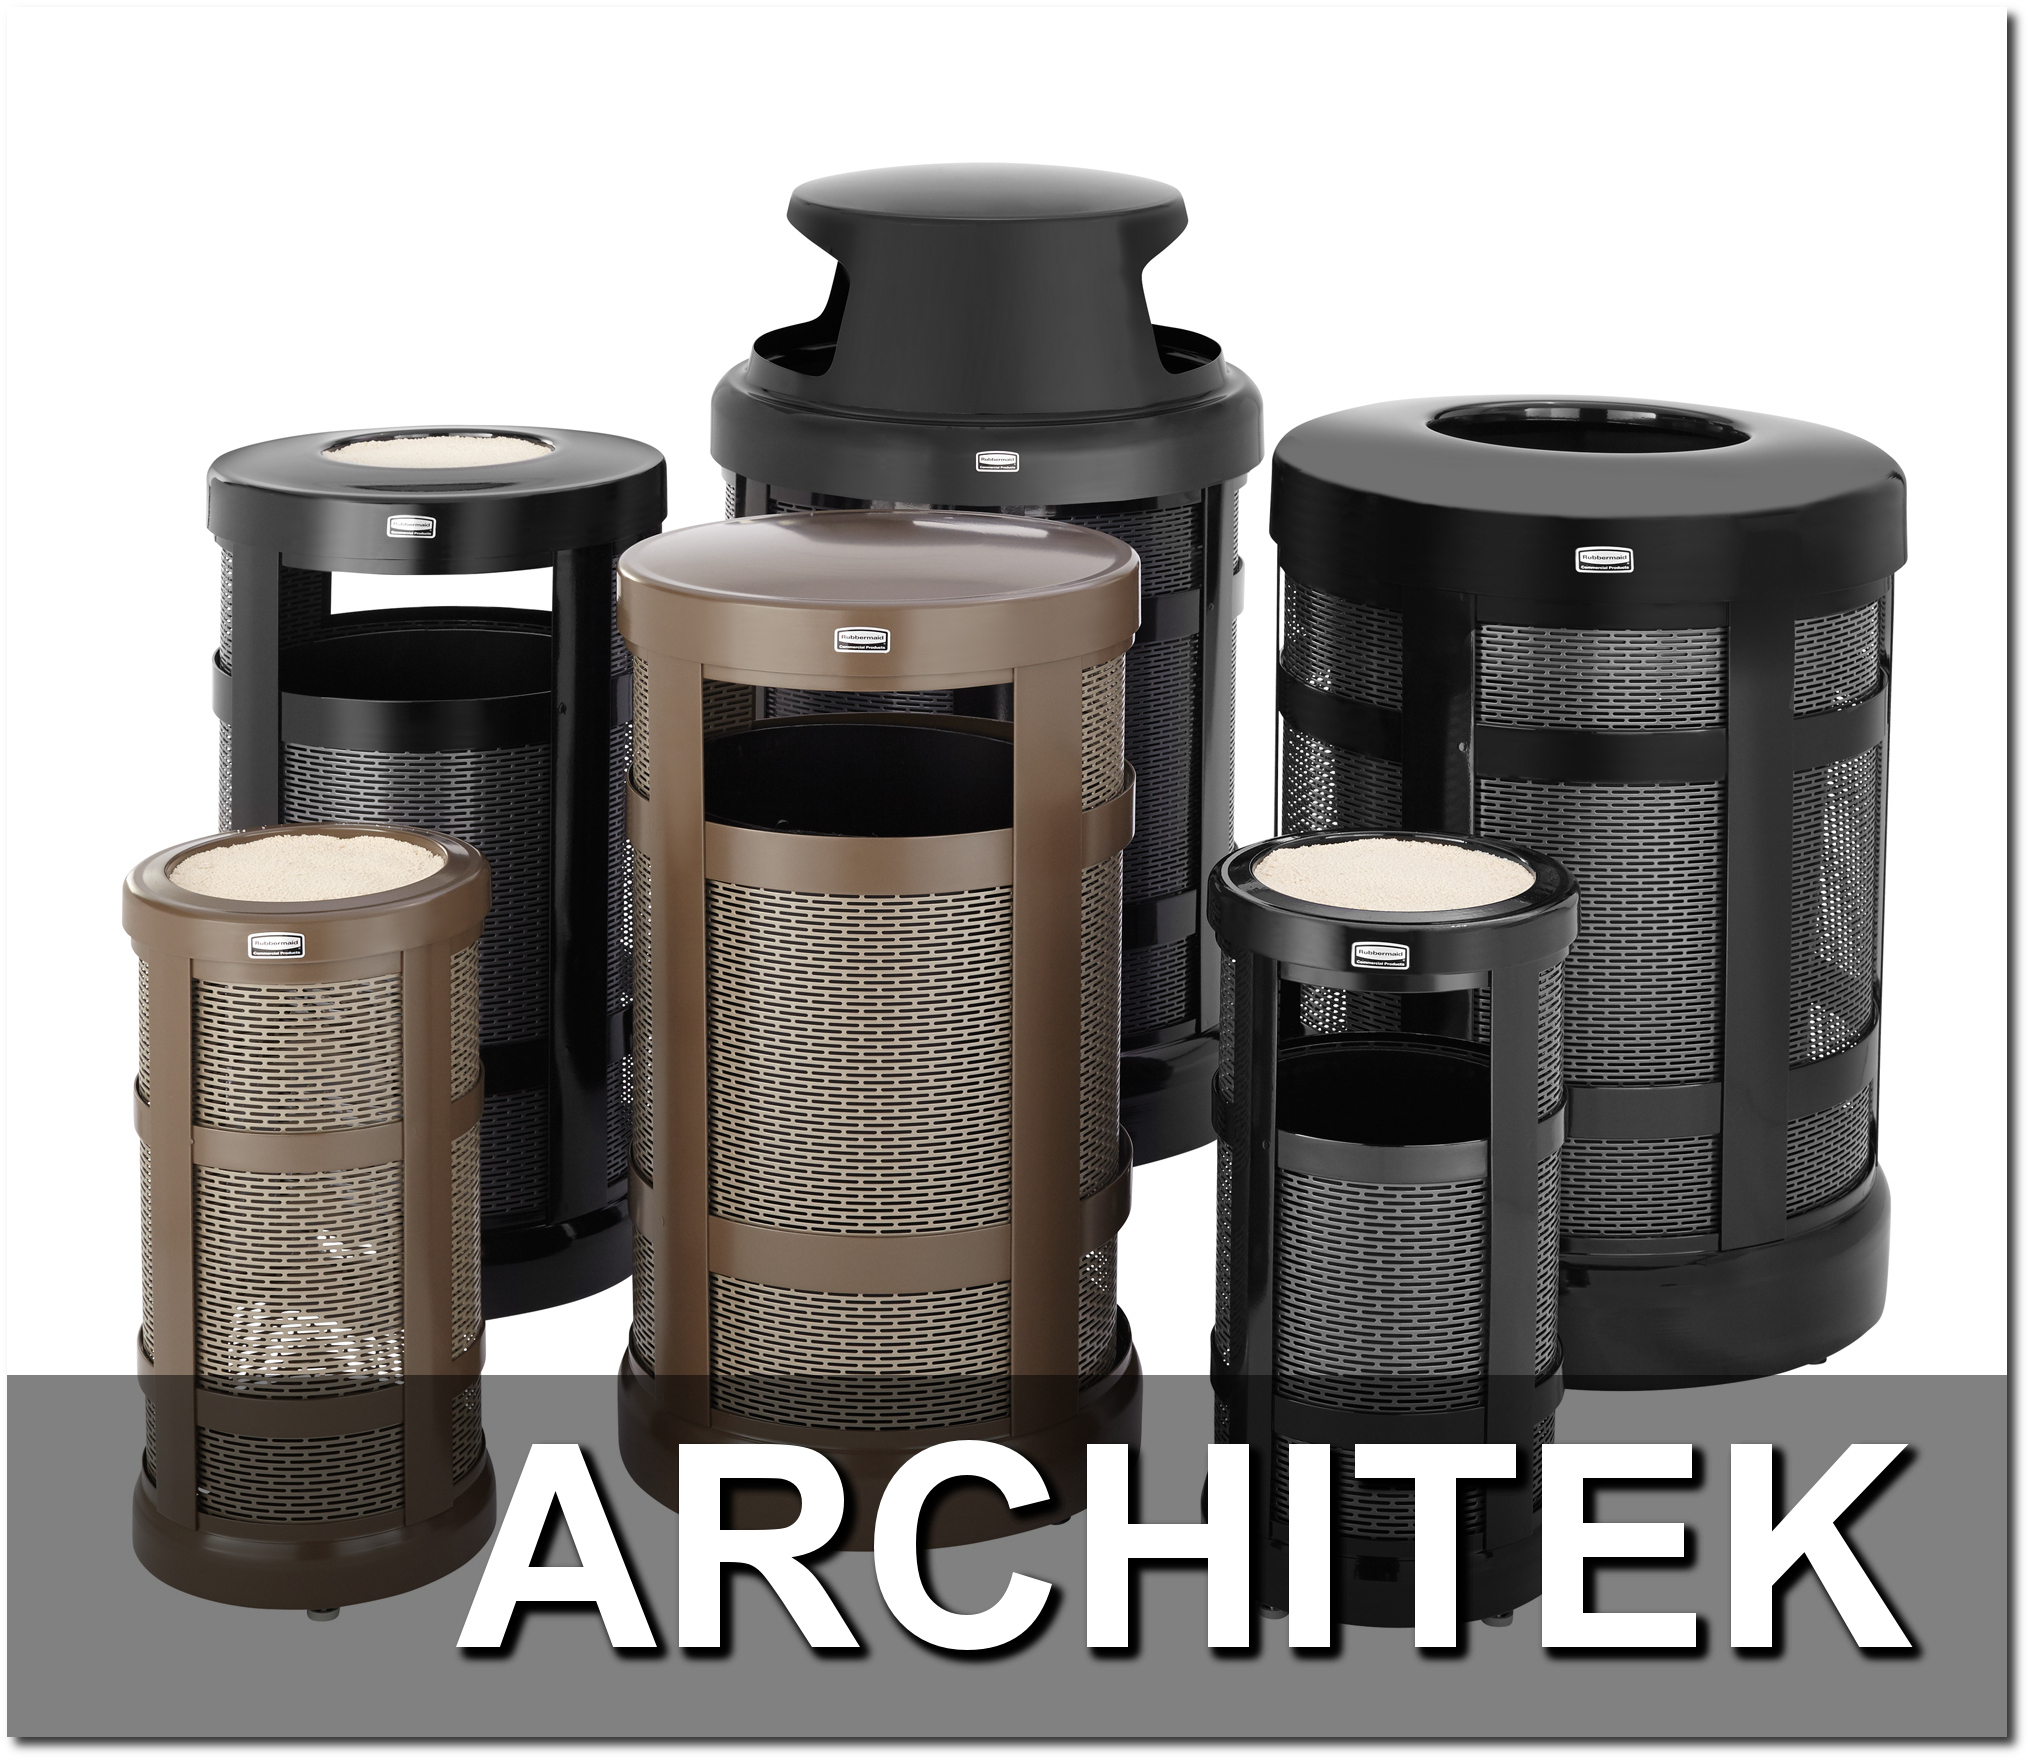 Architek Series Trash Receptacles Overview